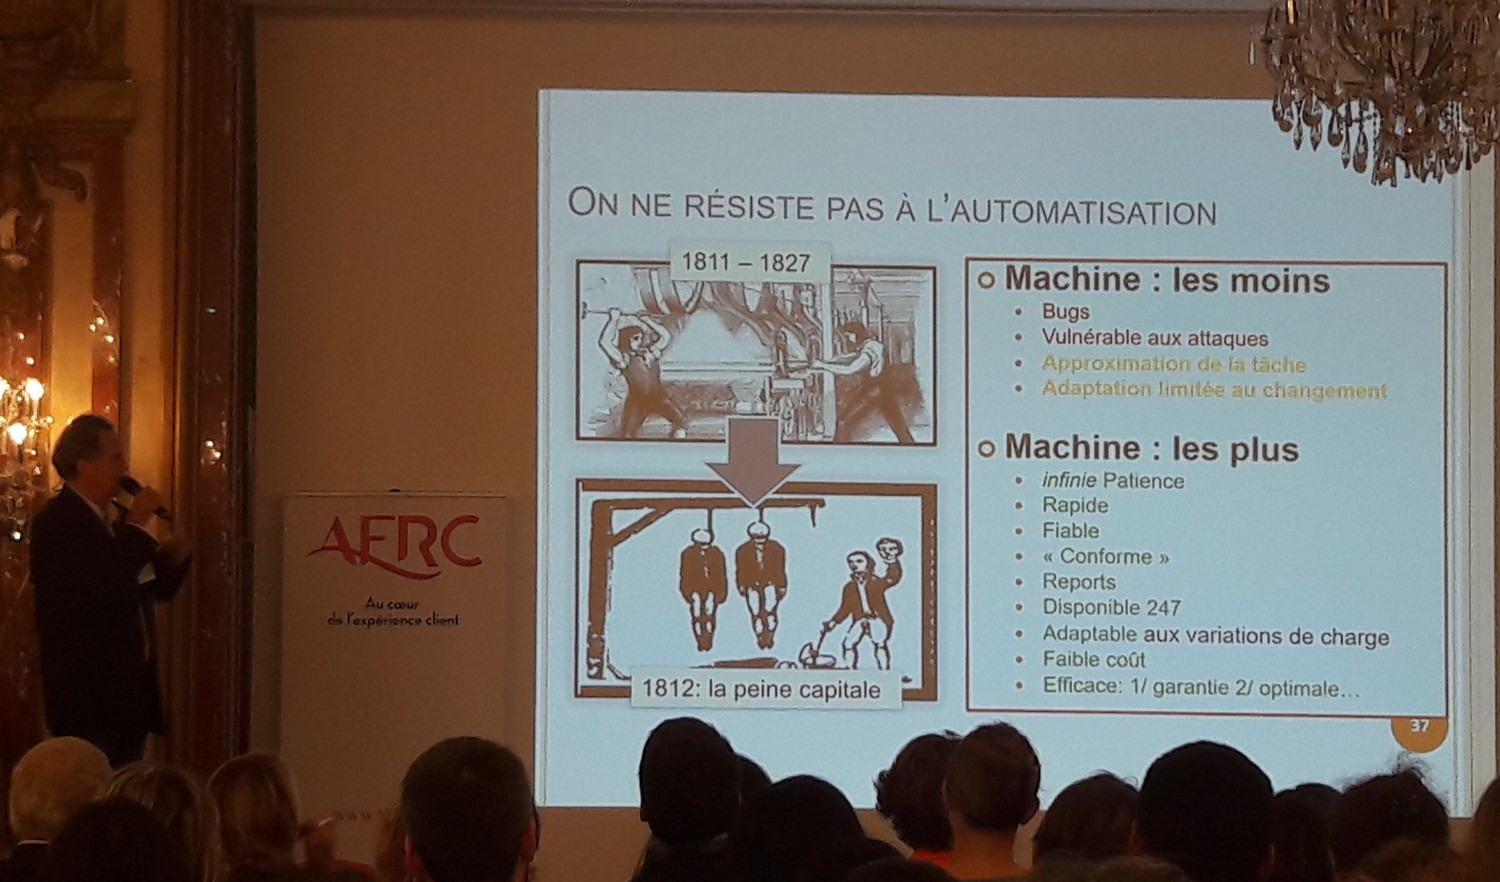 Intelligence Artificielle et Relation Client, quels seront les impacts ? La vision de l'AFRC 14